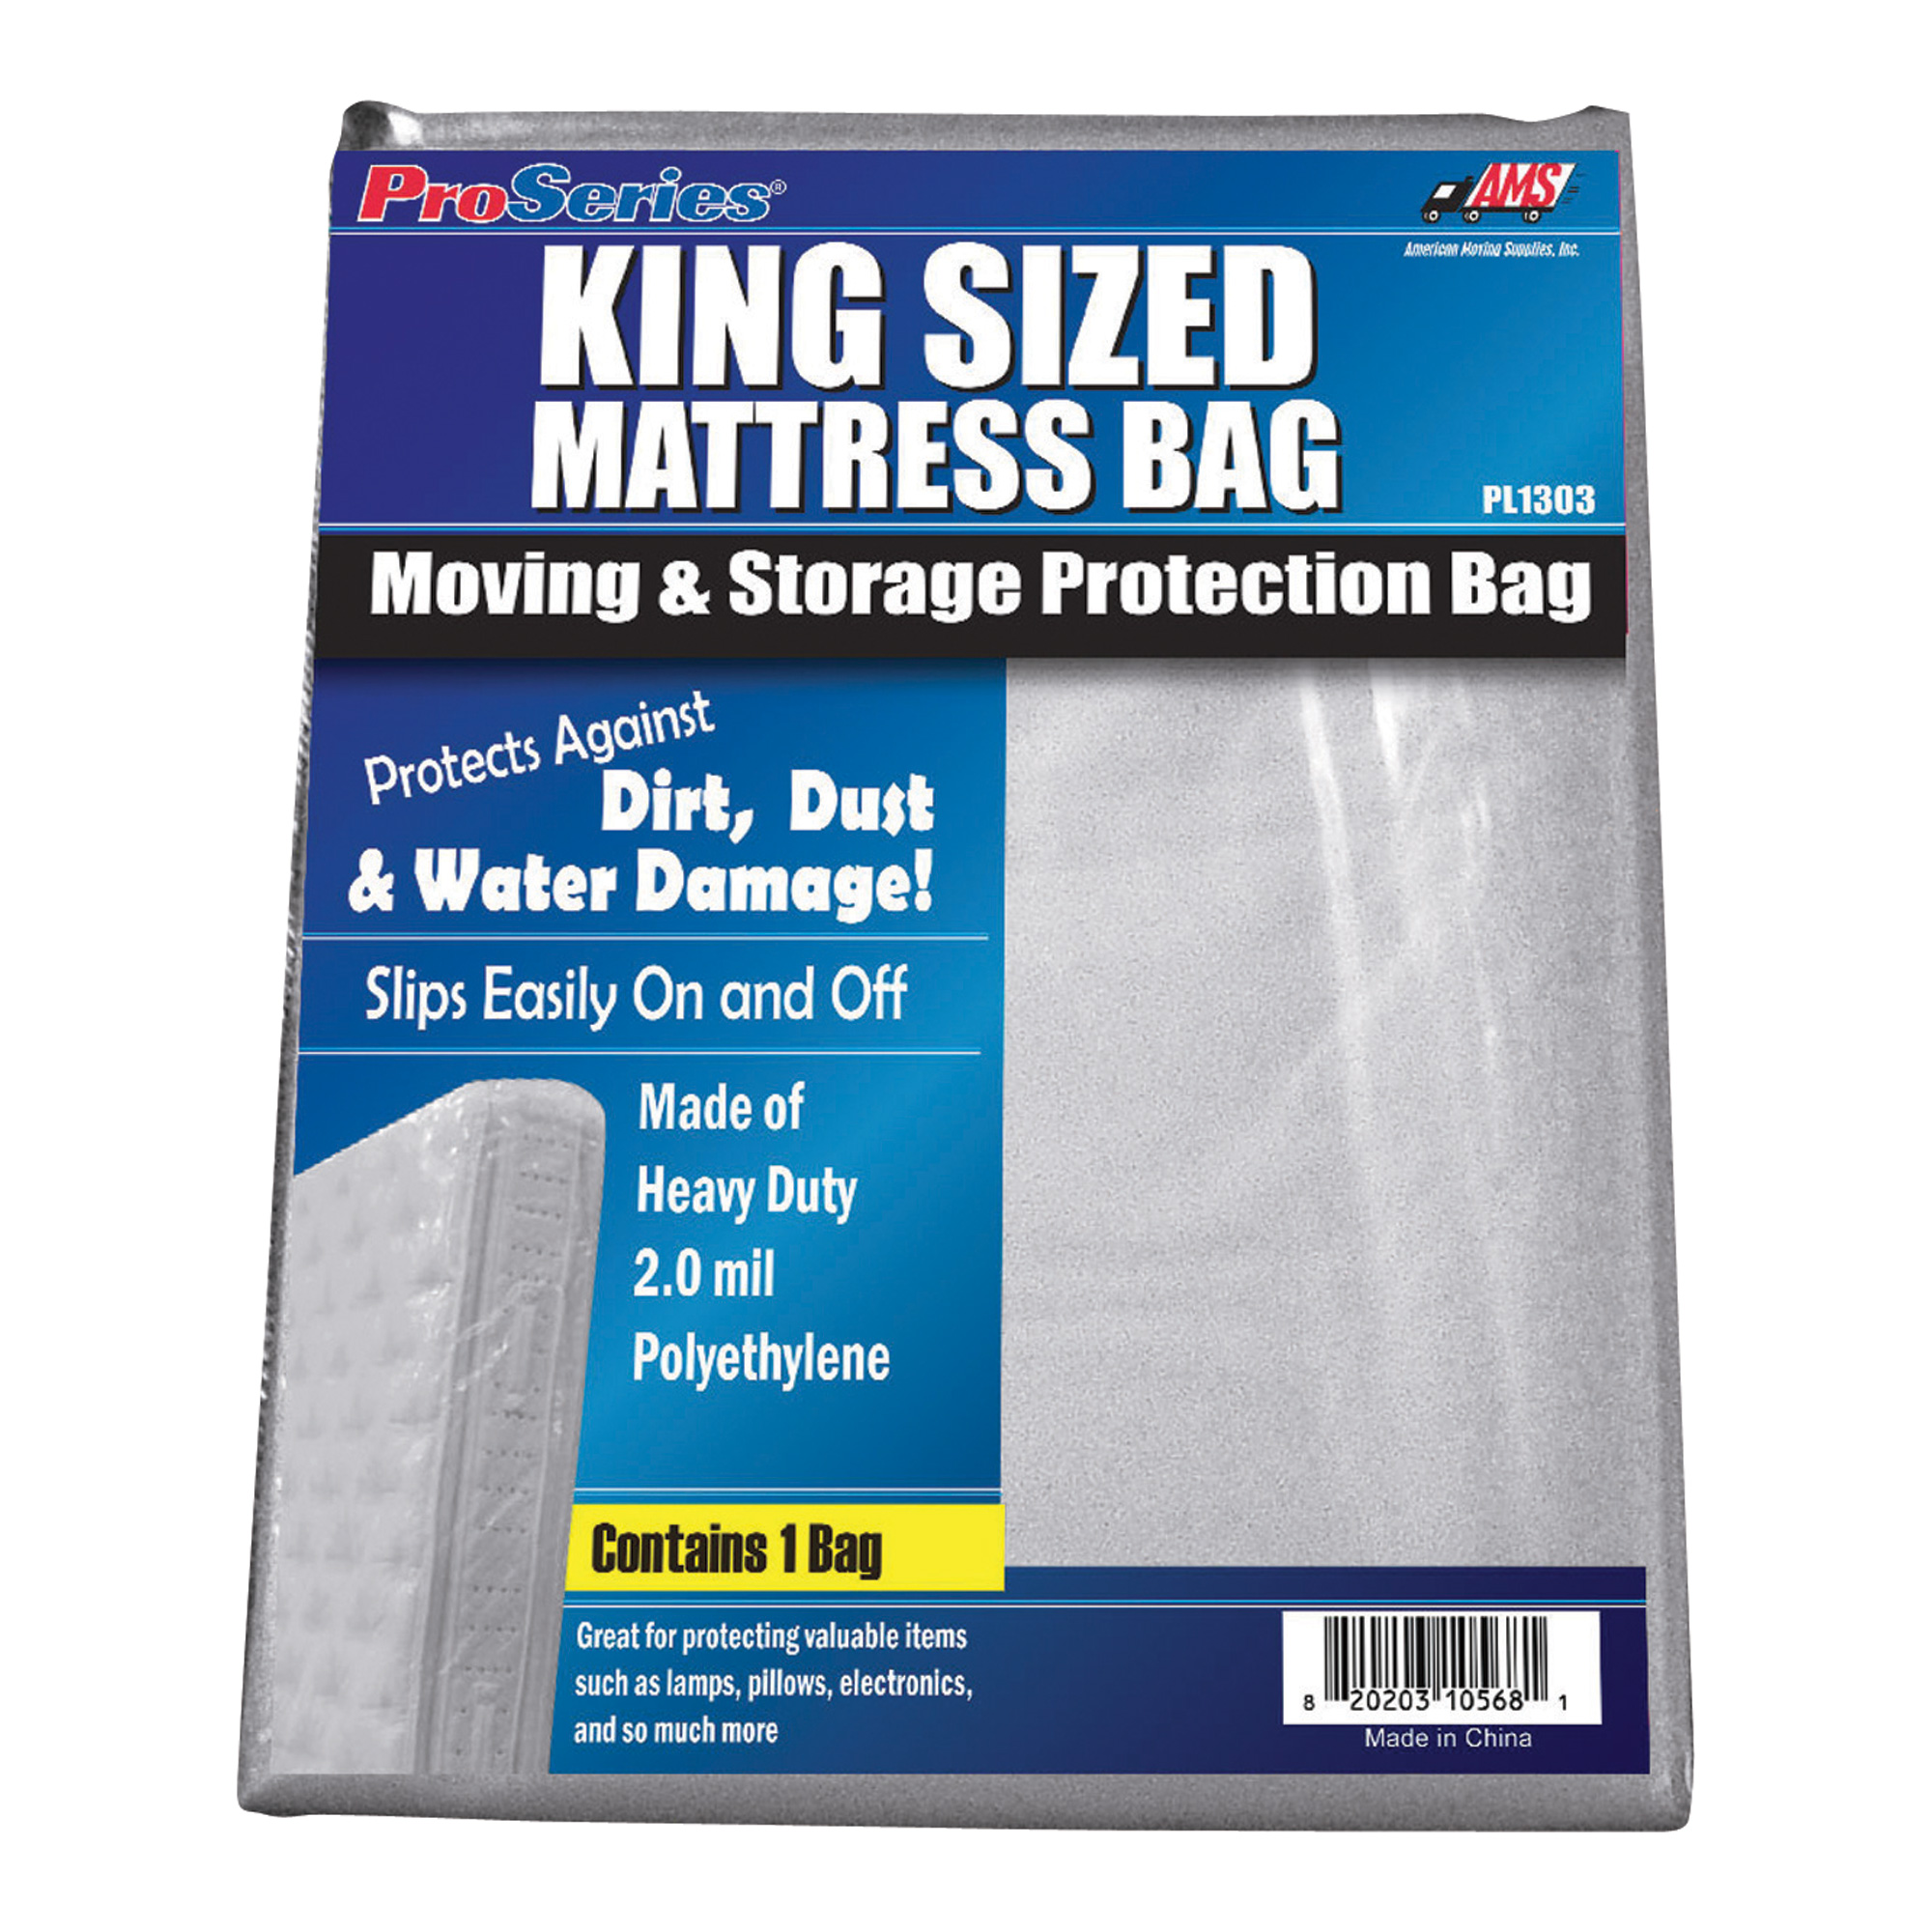 American Moving Supplies Proseries Mattress Bag King Size Bed Model Pi1303